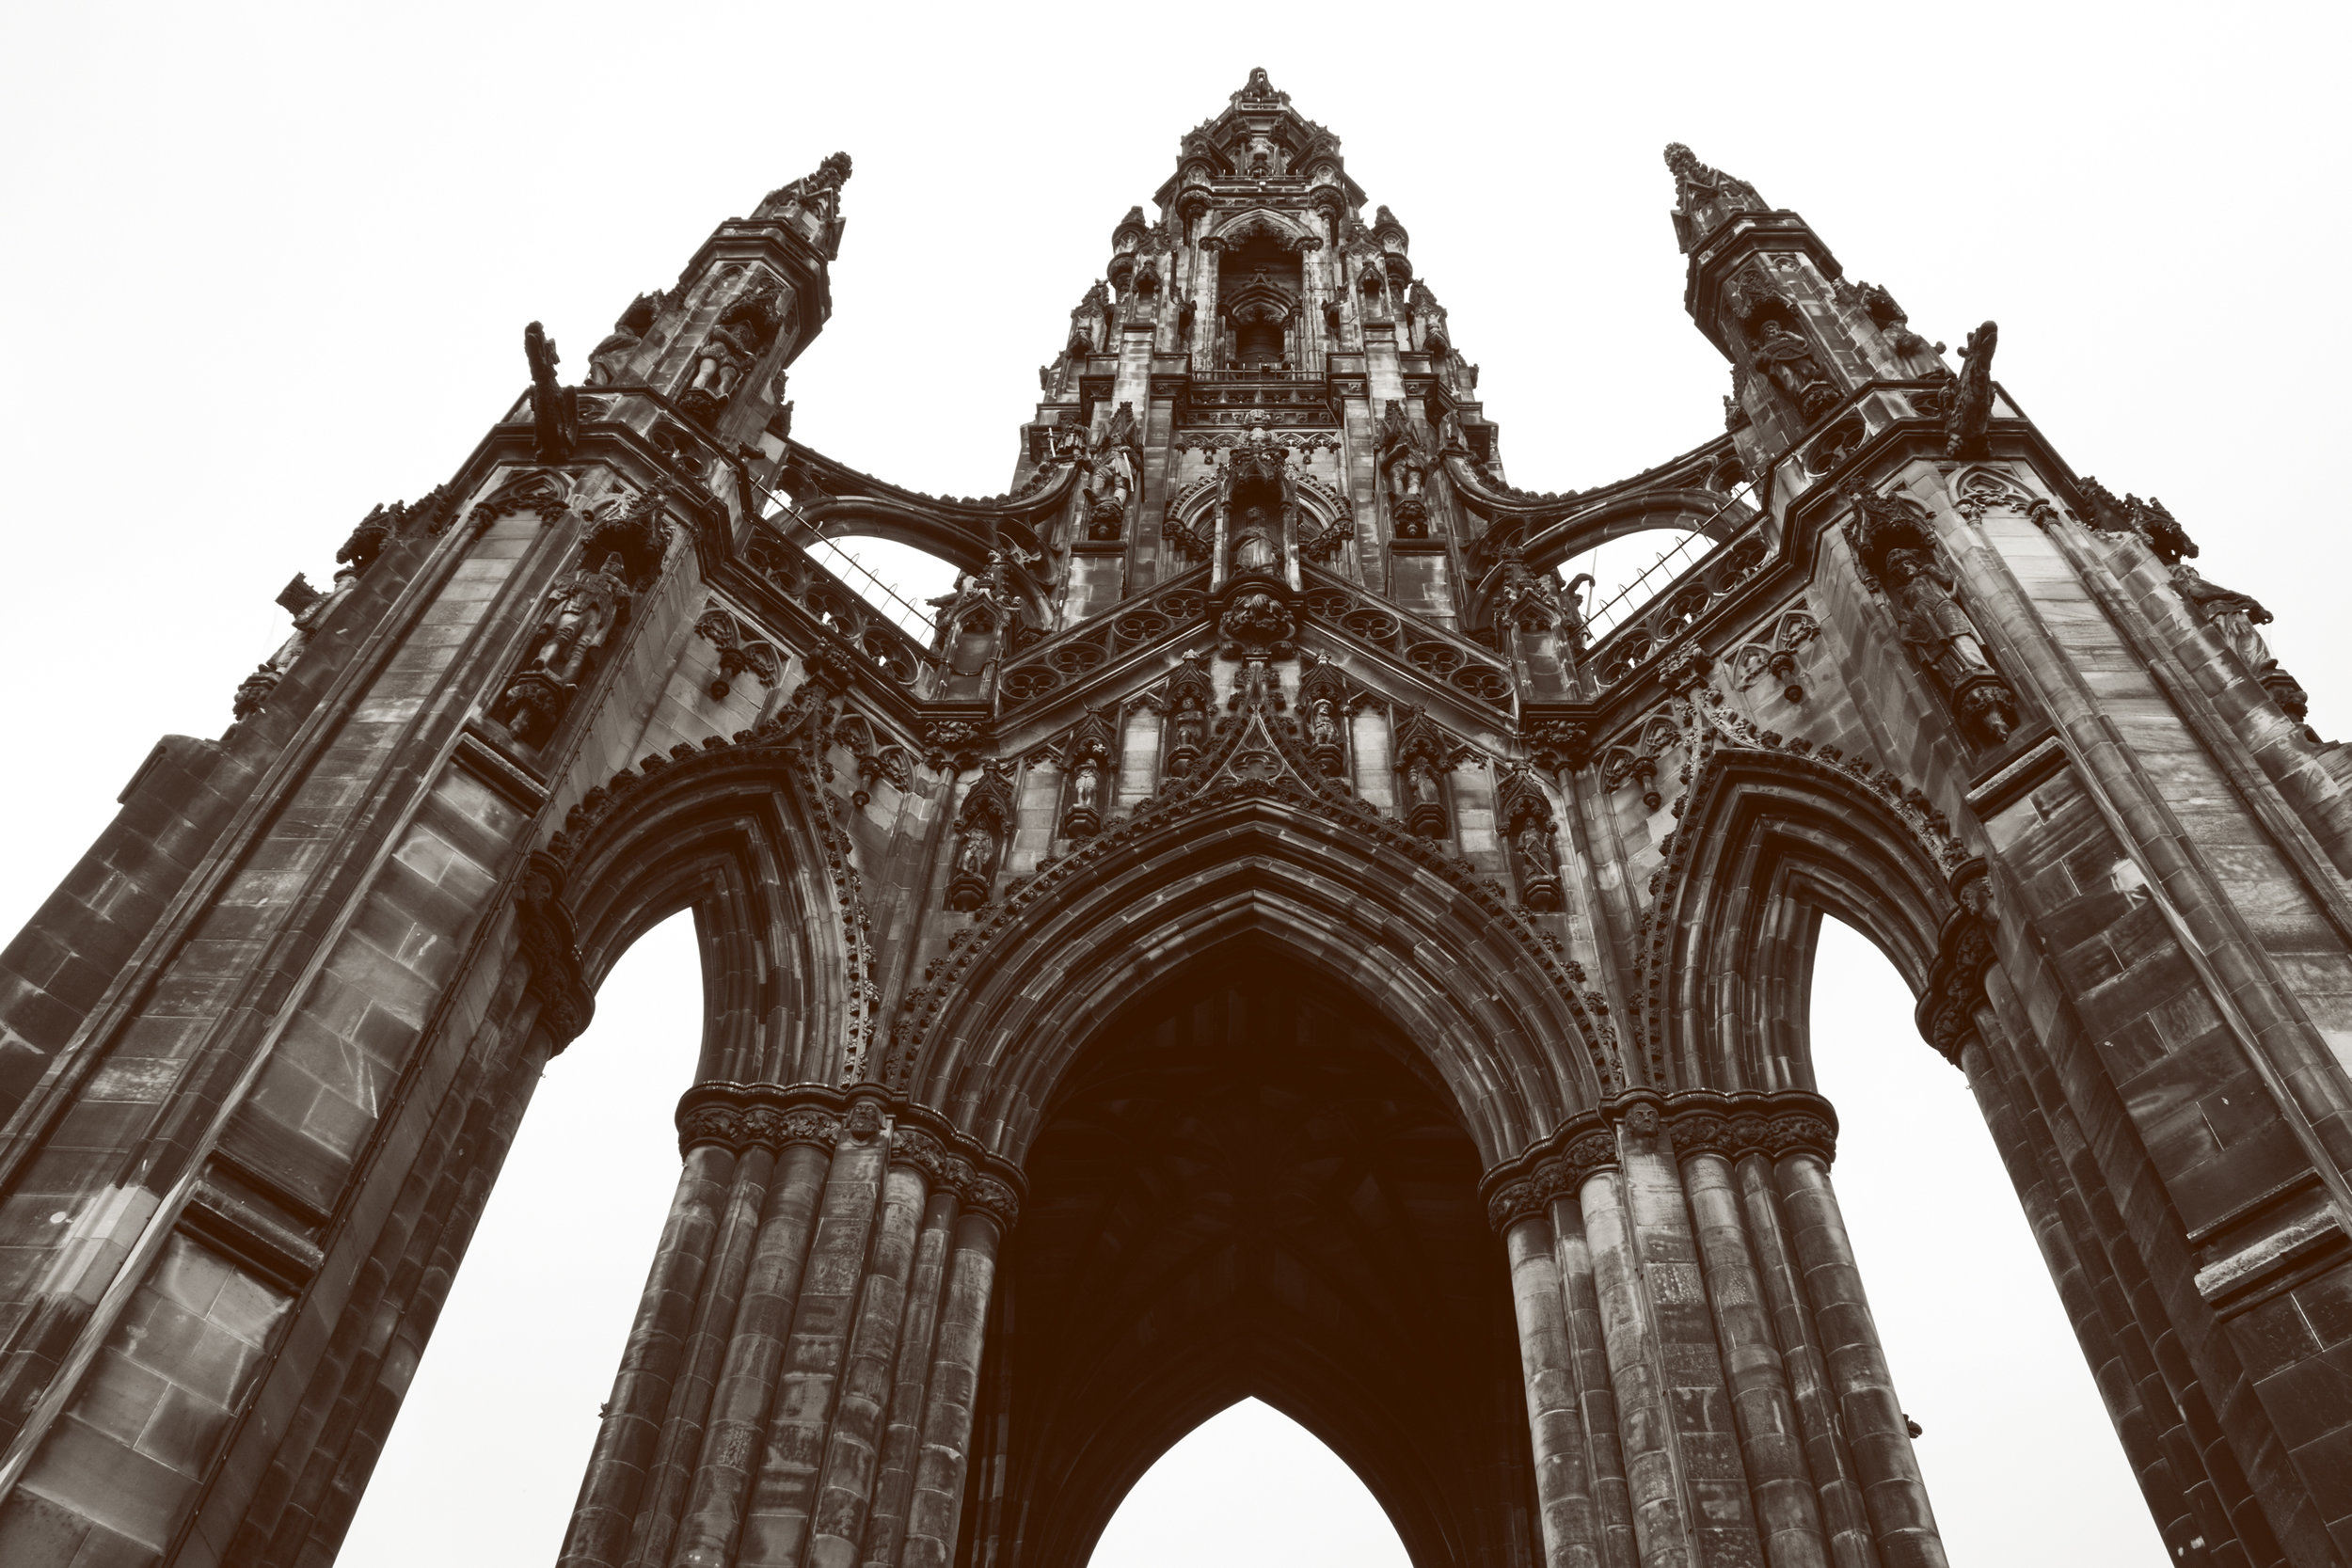 Edinburgh_scotmonument3.jpg